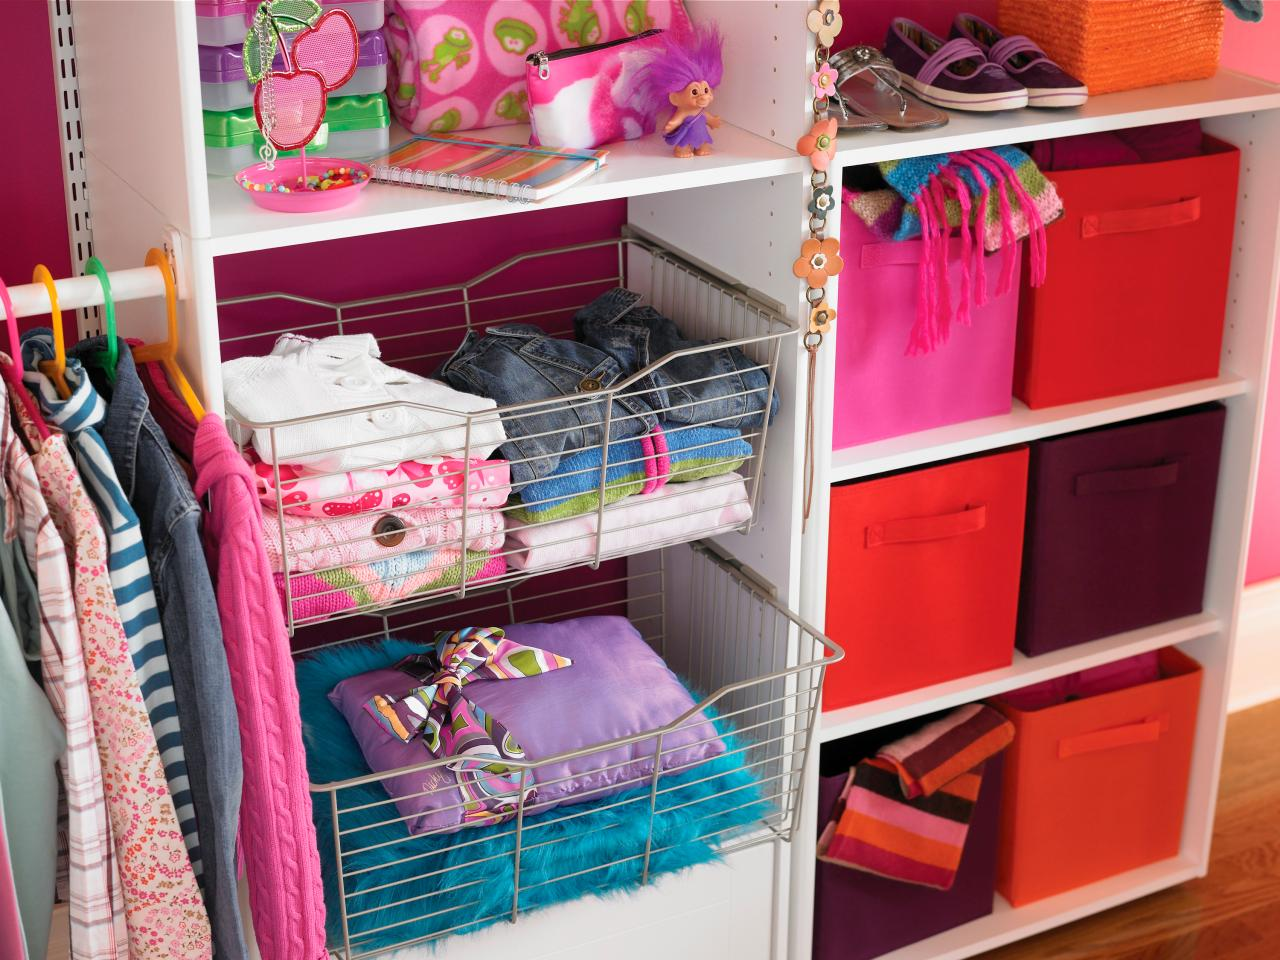 Closet Organizing Ideas Pleasing Small Closet Organization Ideas Pictures Options & Tips  Hgtv Decorating Design